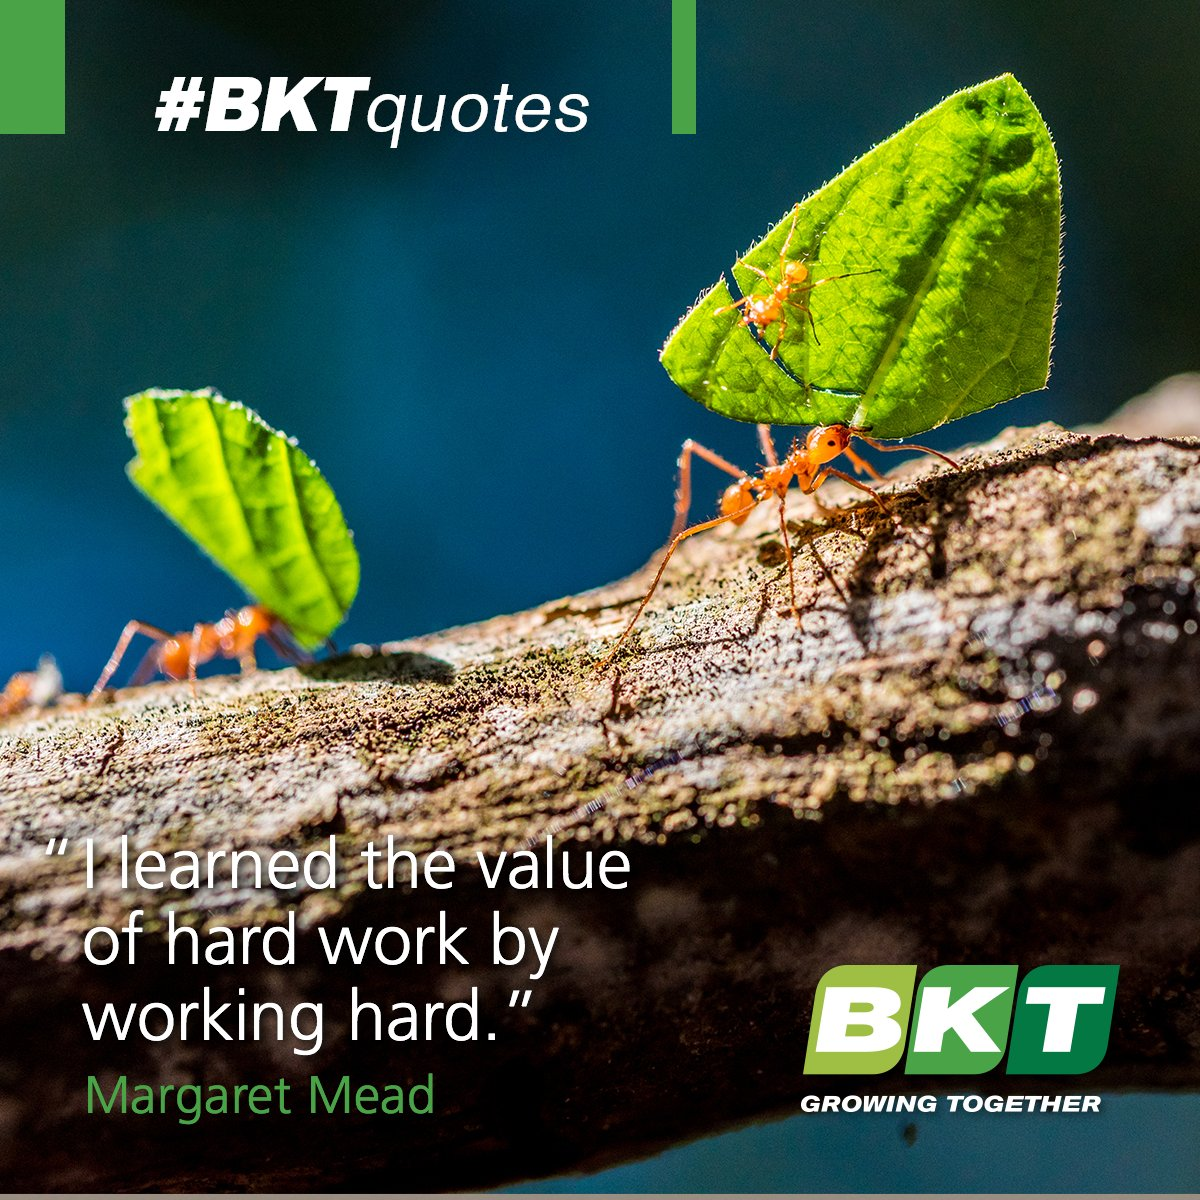 We learn the great value of hard #work every day. #BKTquote #quote #quoteoftheday https://t.co/TMgMjIwTfJ